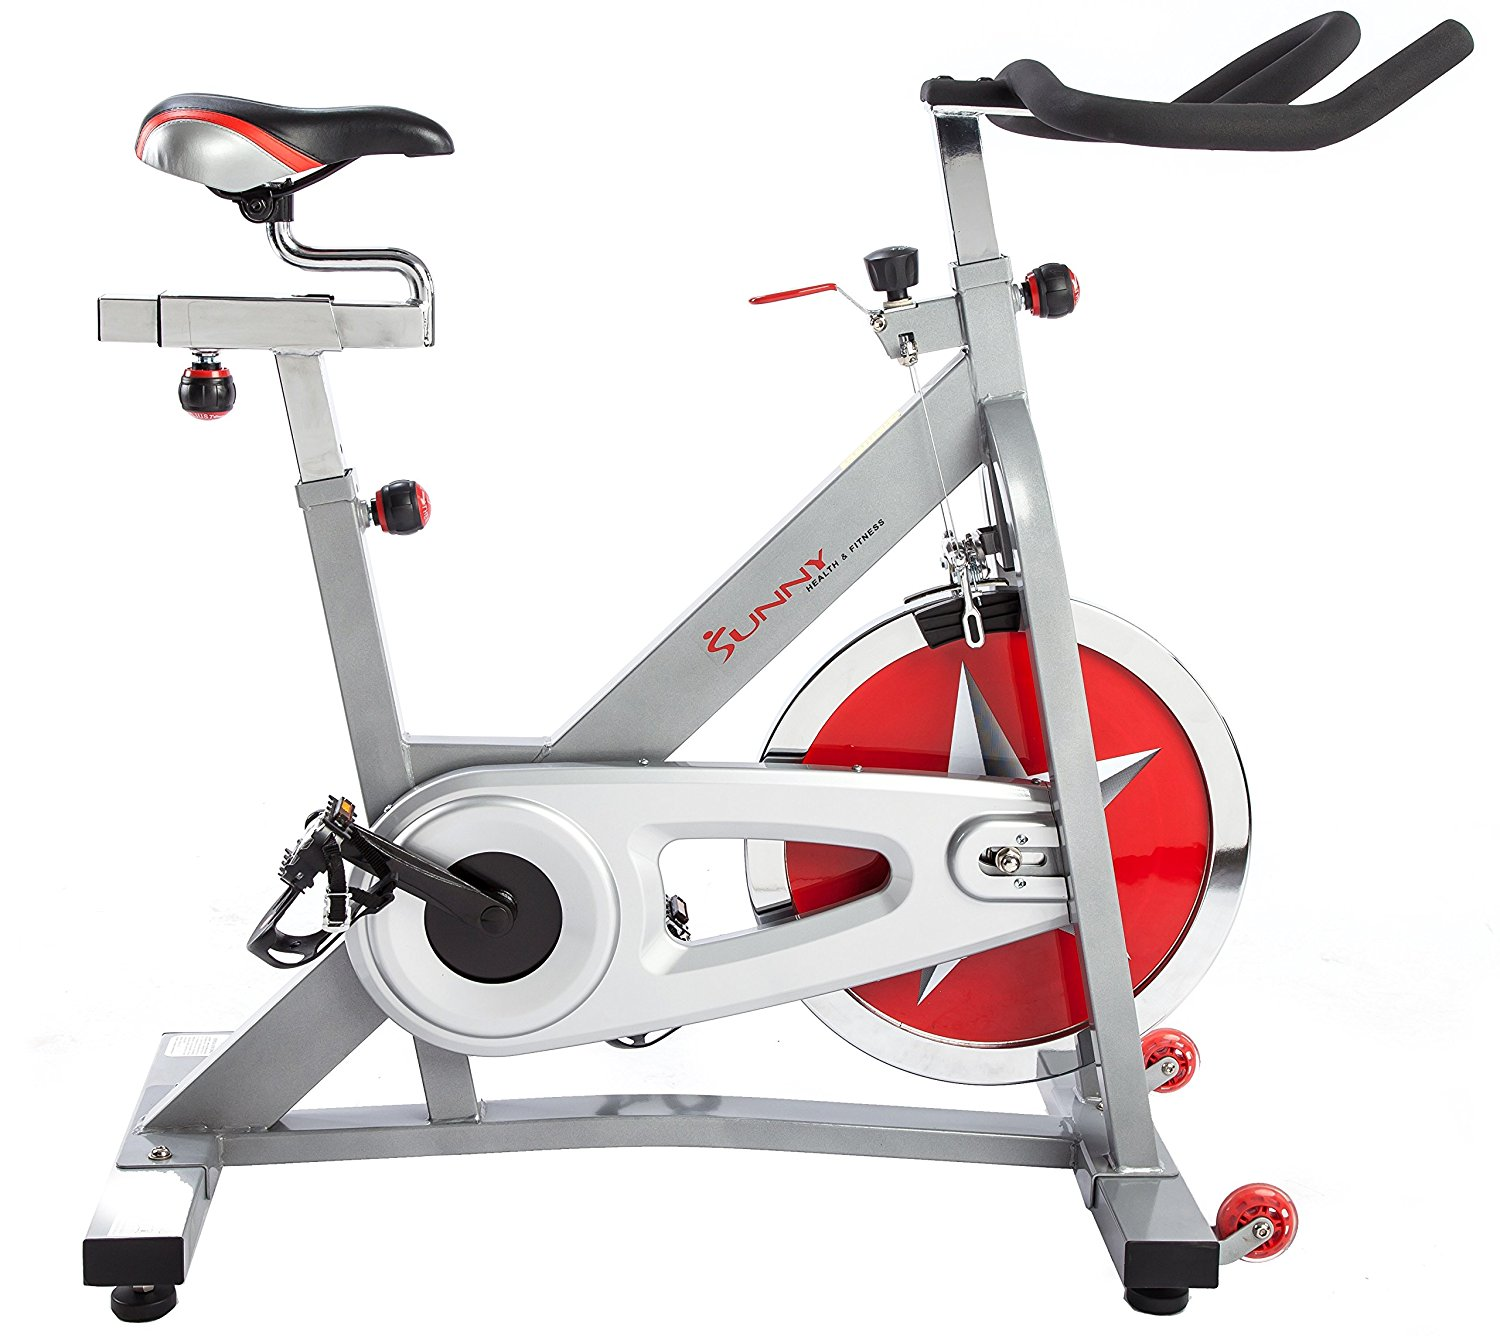 Best Spinning Bike For Home Use Sunny Health Fitness B901 Spin